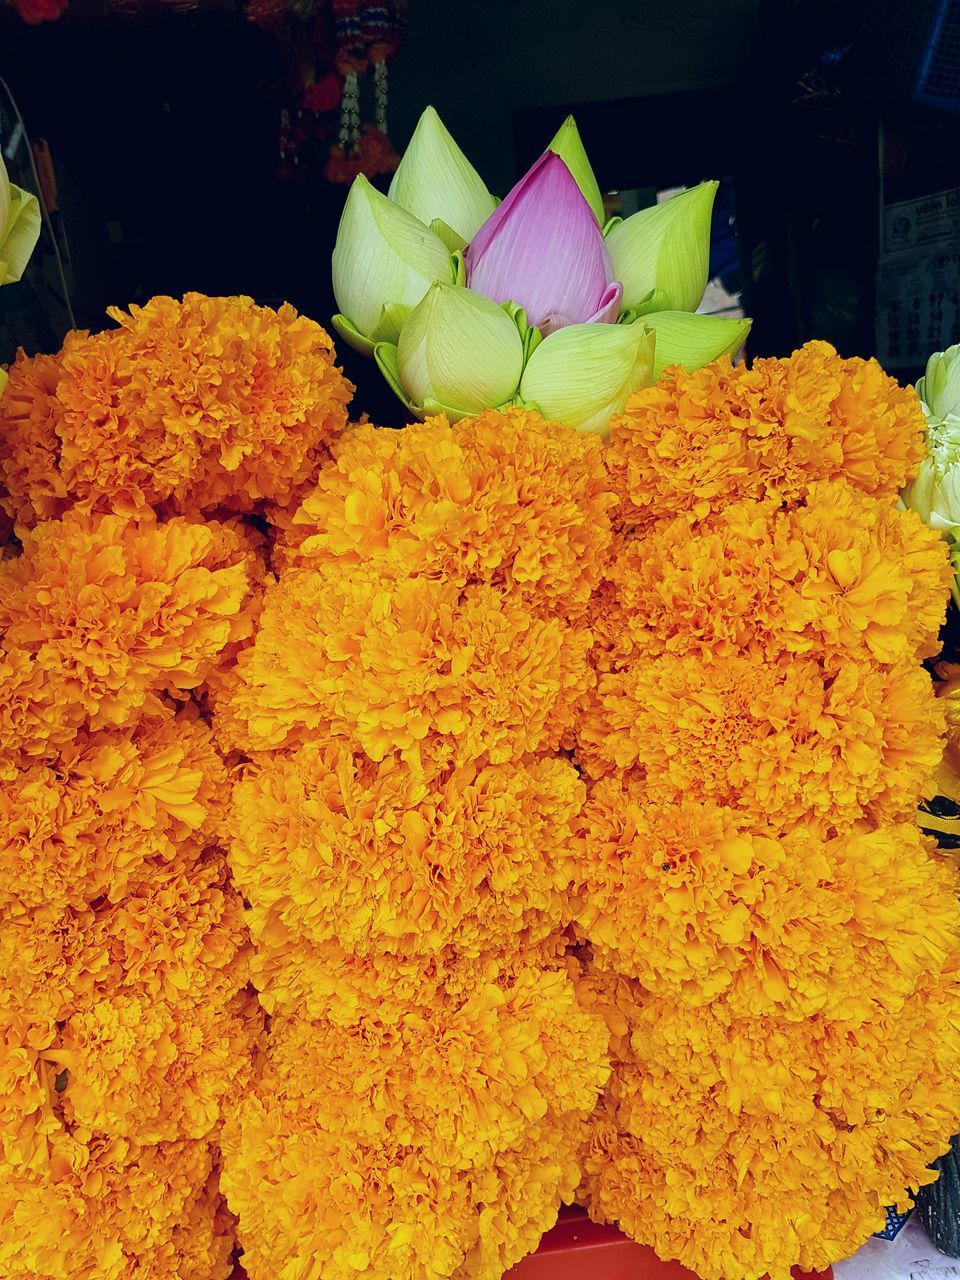 flower, freshness, flower market, fragility, for sale, retail, yellow, market, marigold, petal, flower shop, flower head, choice, beauty in nature, no people, close-up, nature, bouquet, day, outdoors